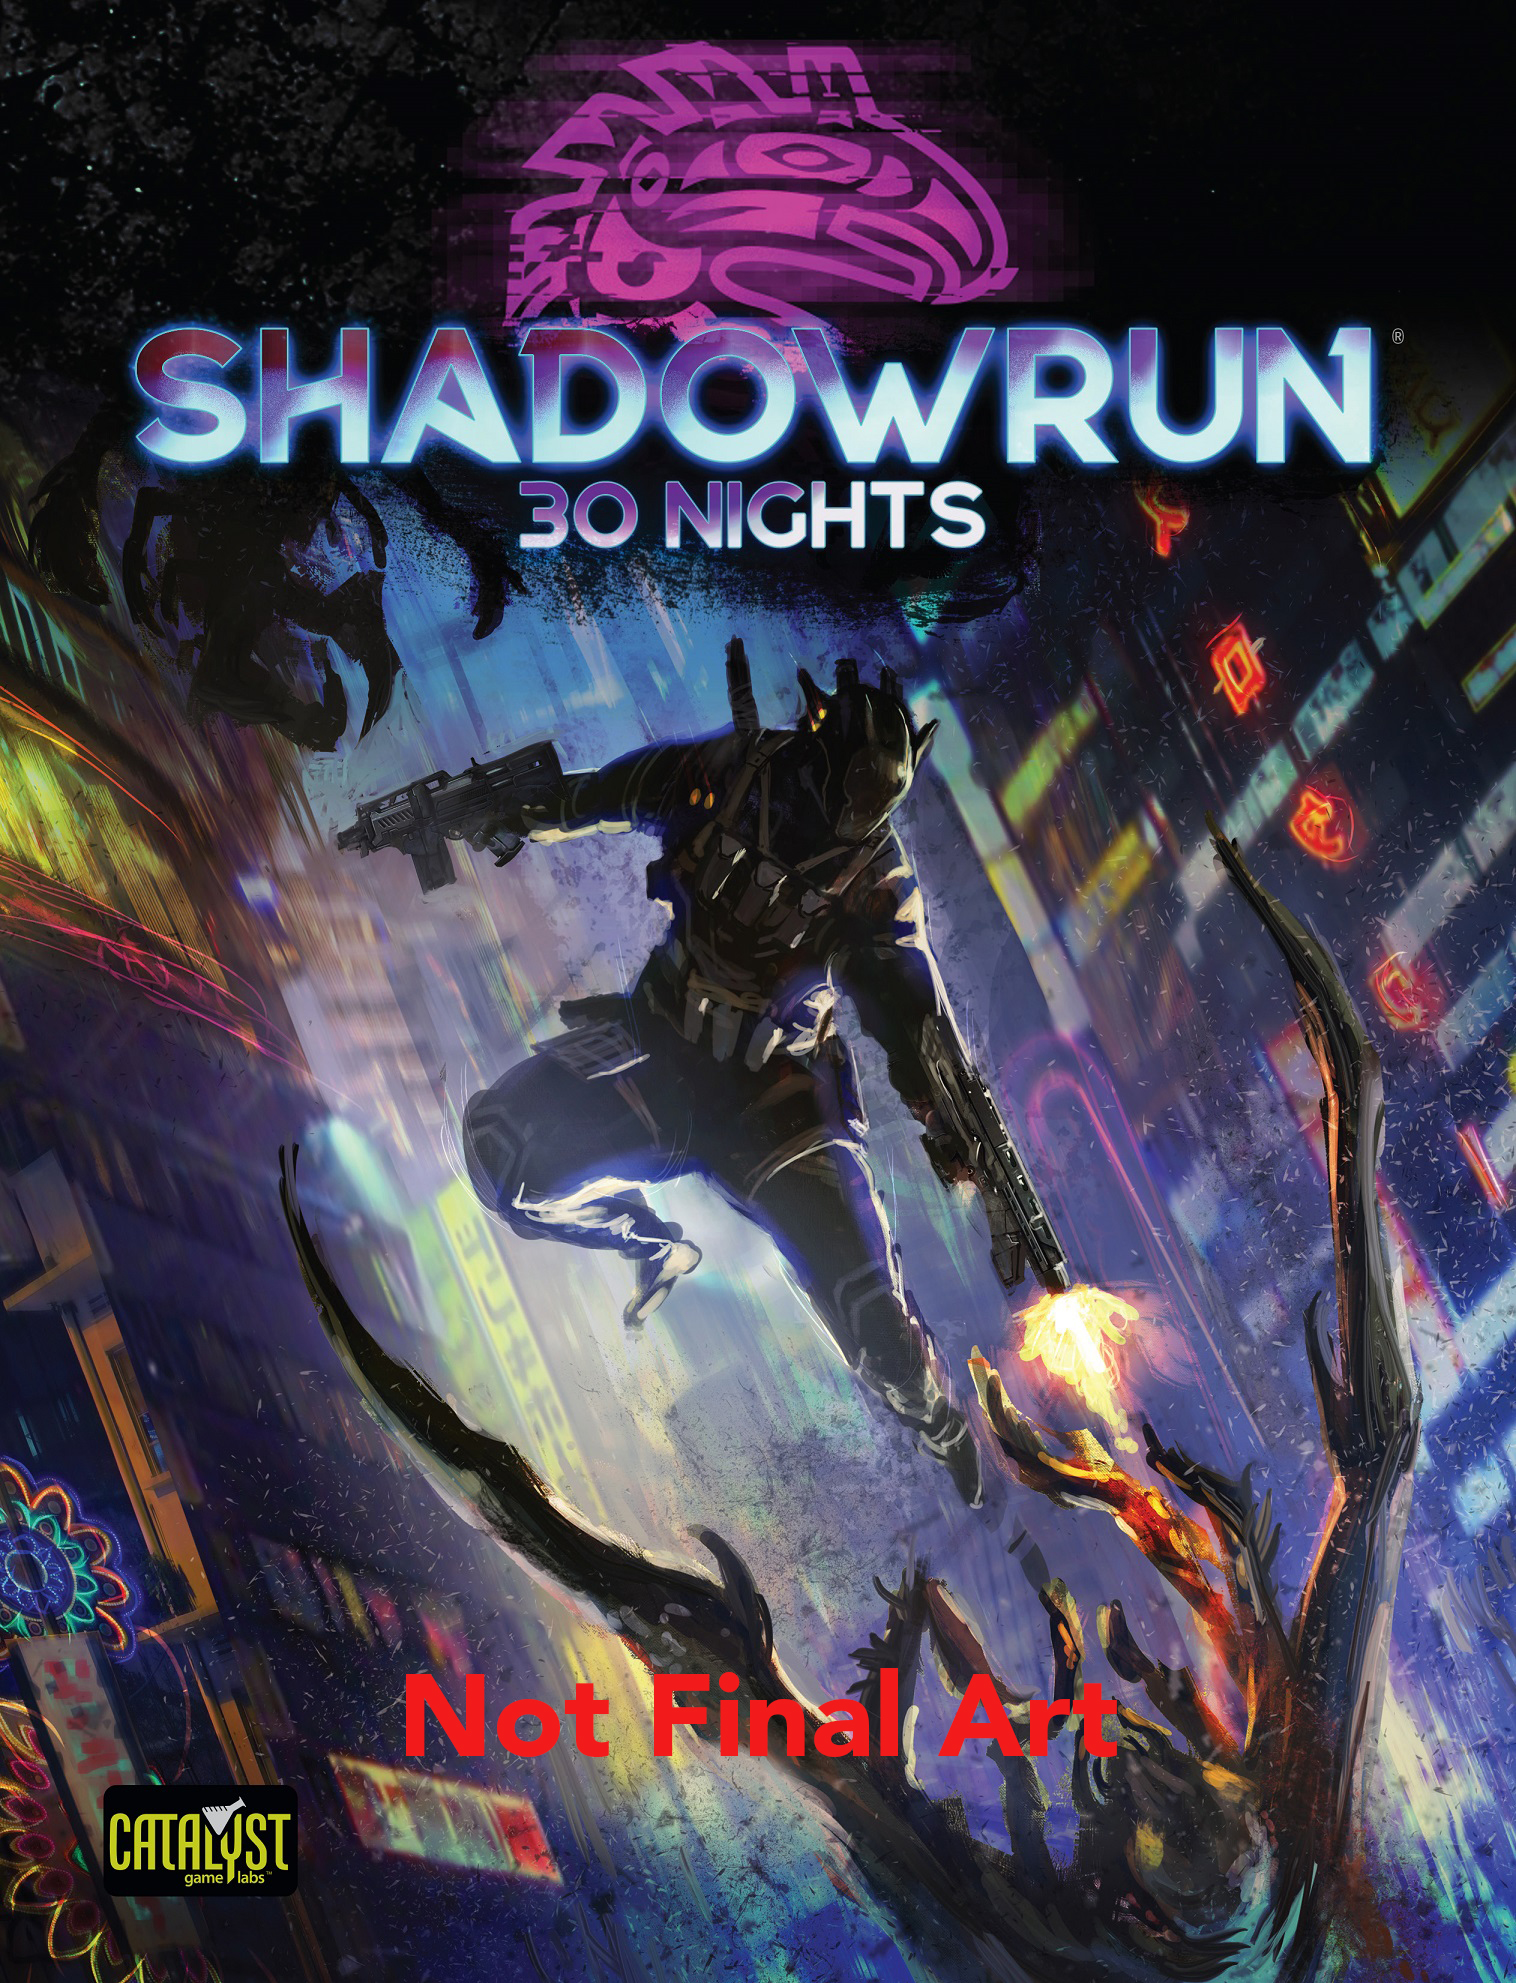 Preview the Lineup of Shadowrun, Sixth Edition Rulebooks ...